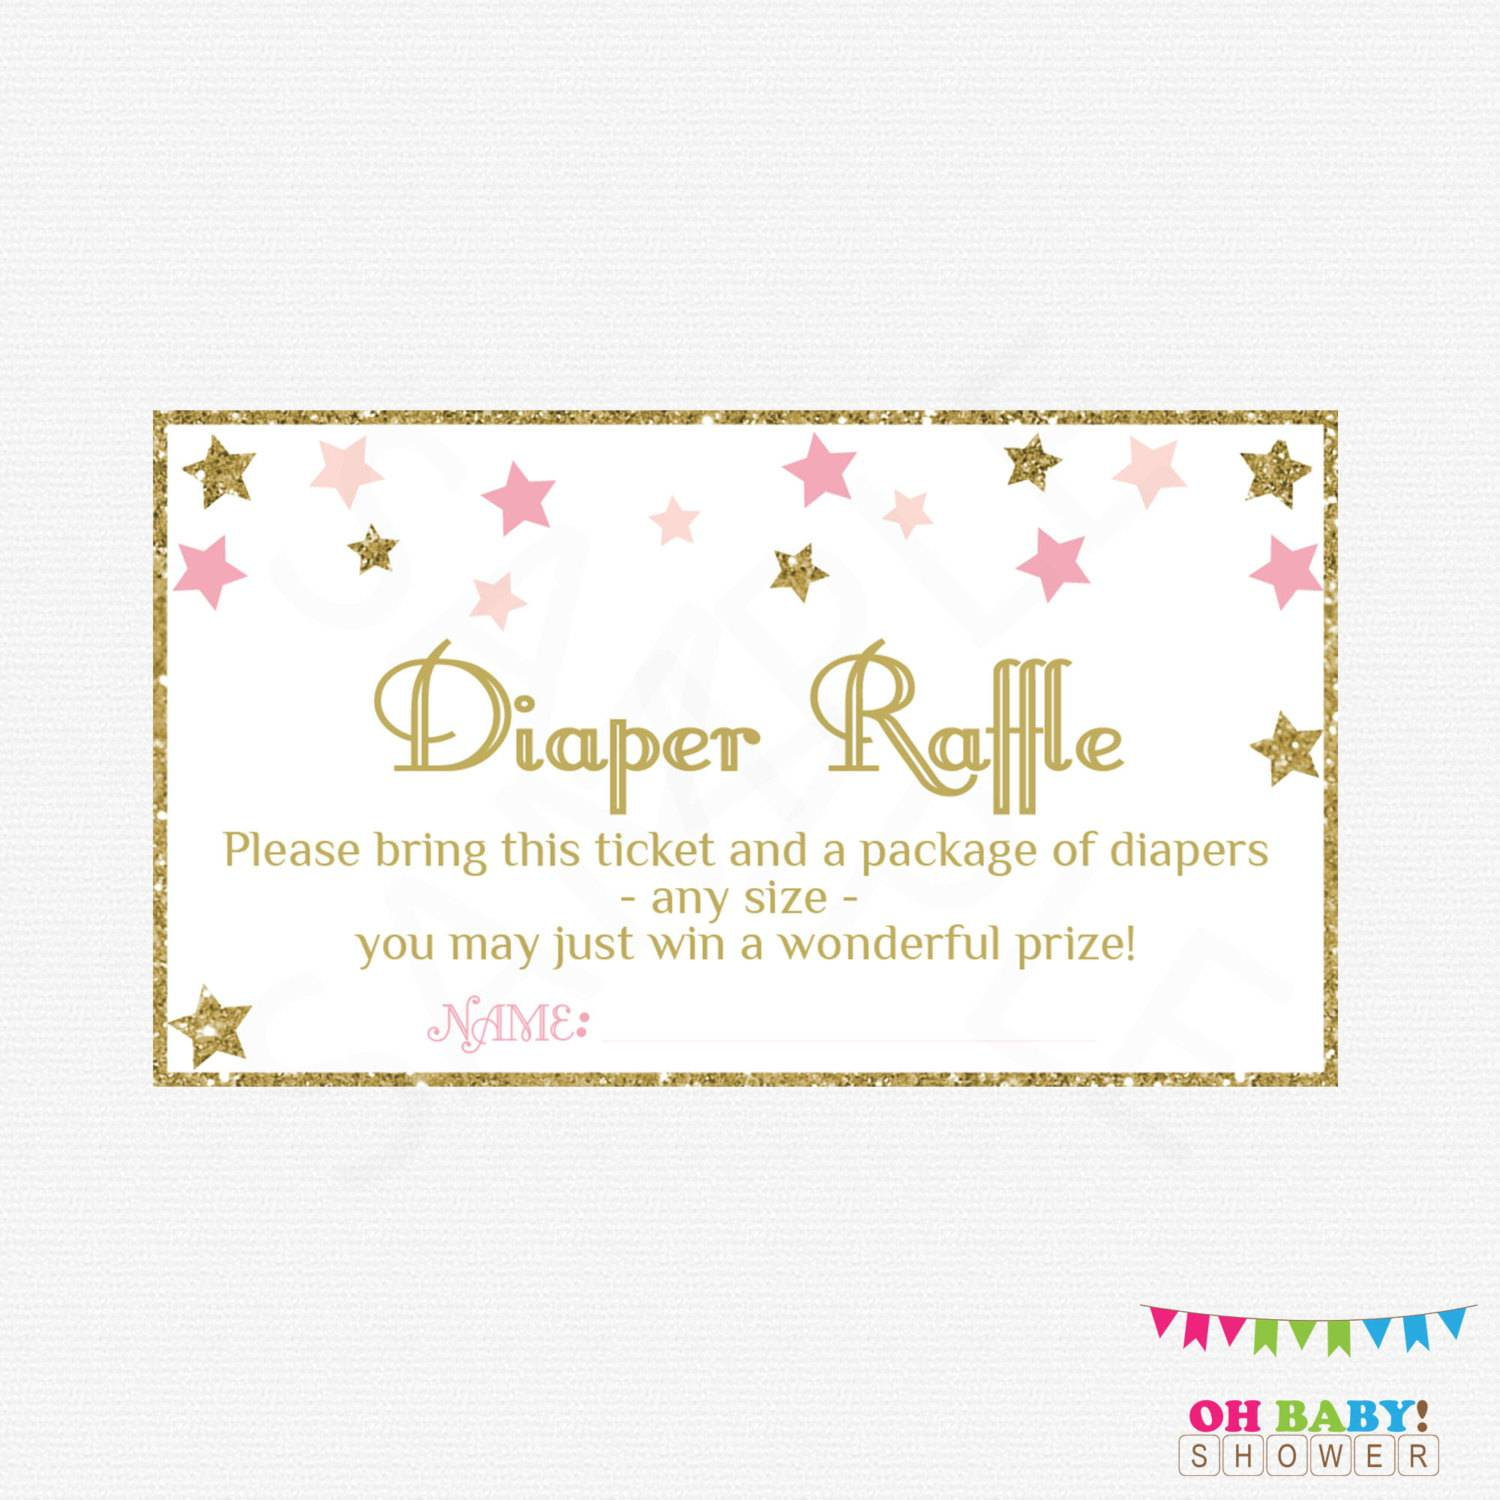 This is a picture of Epic Free Printable Diaper Raffle Tickets